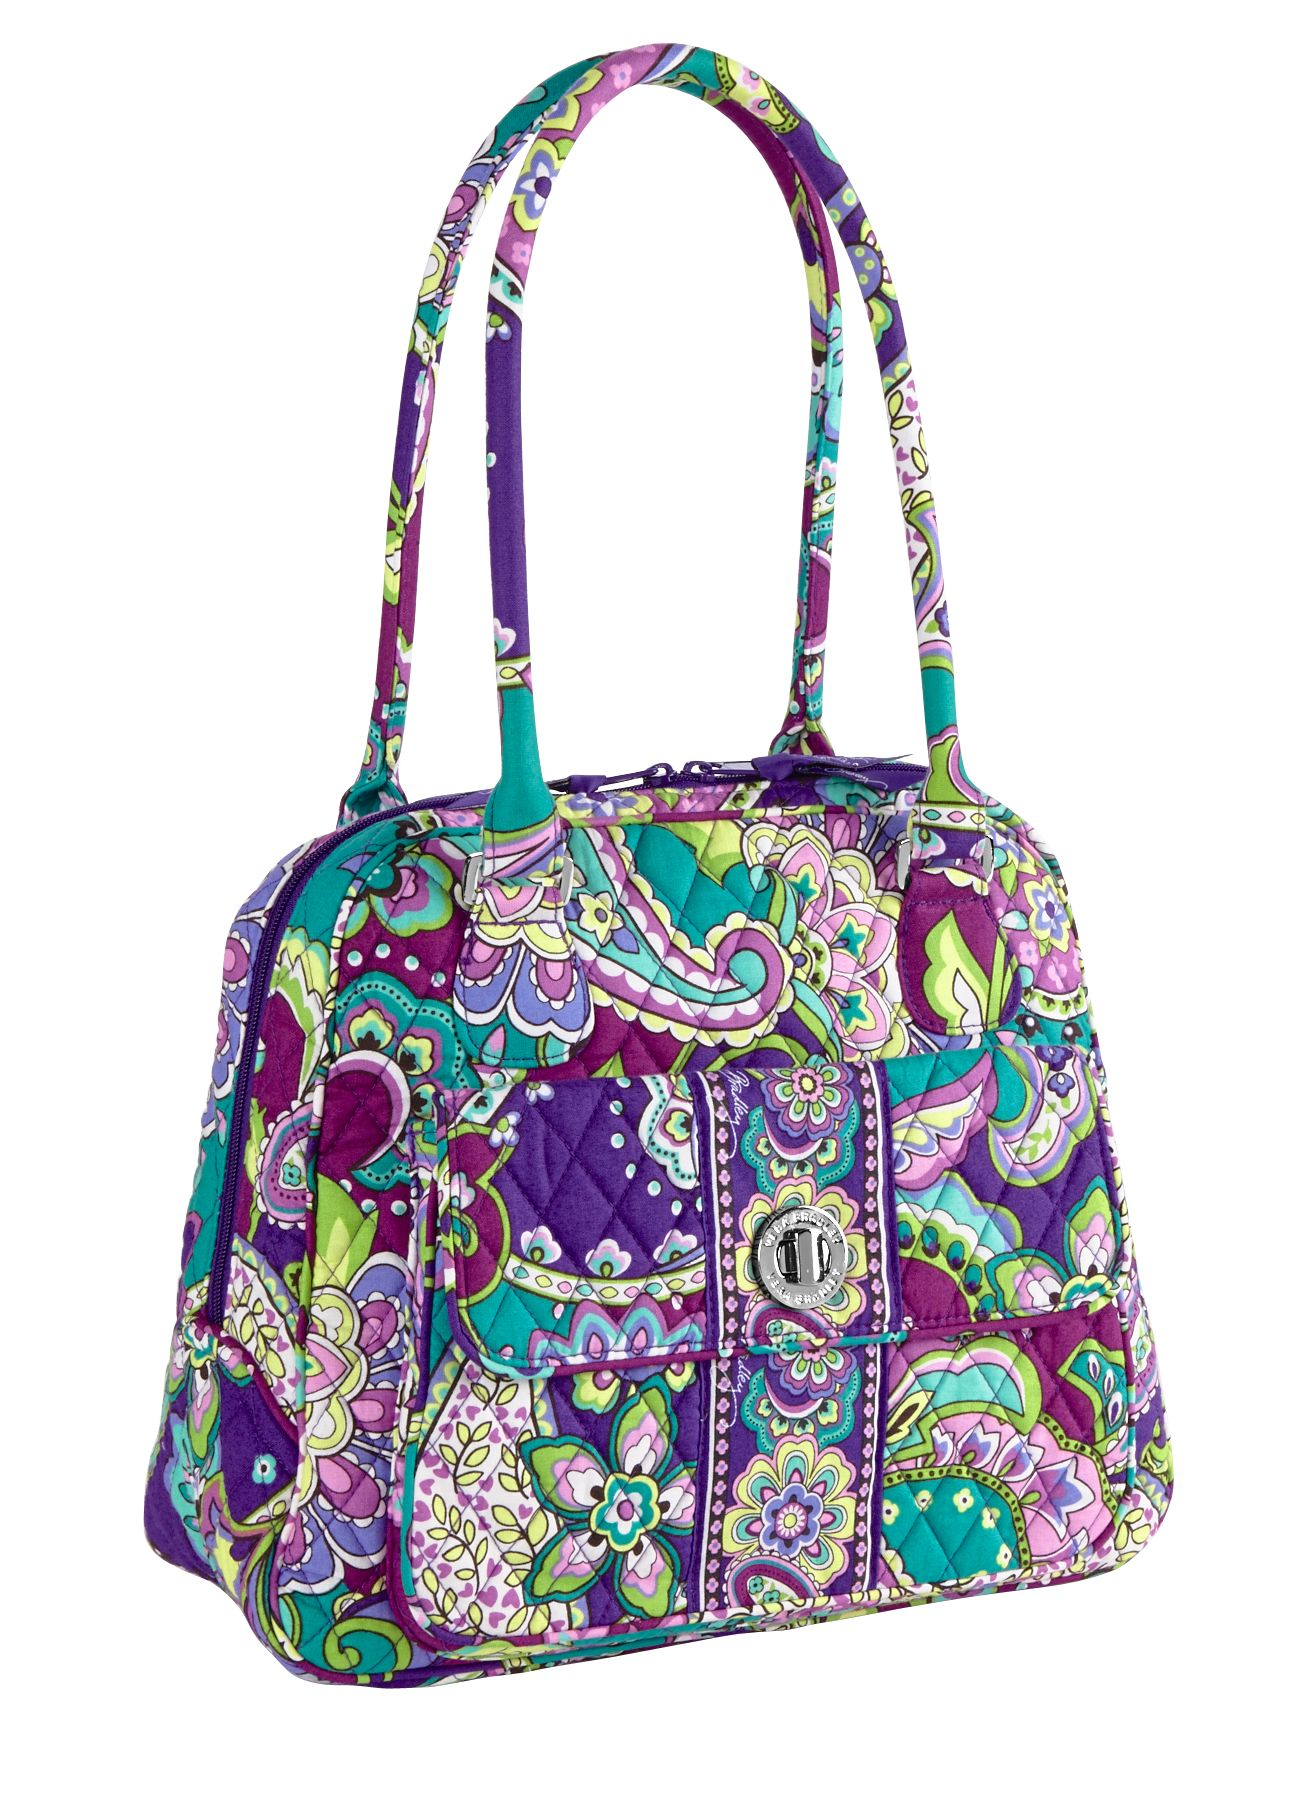 Vera Bradley Turn Lock Satchel in Heather